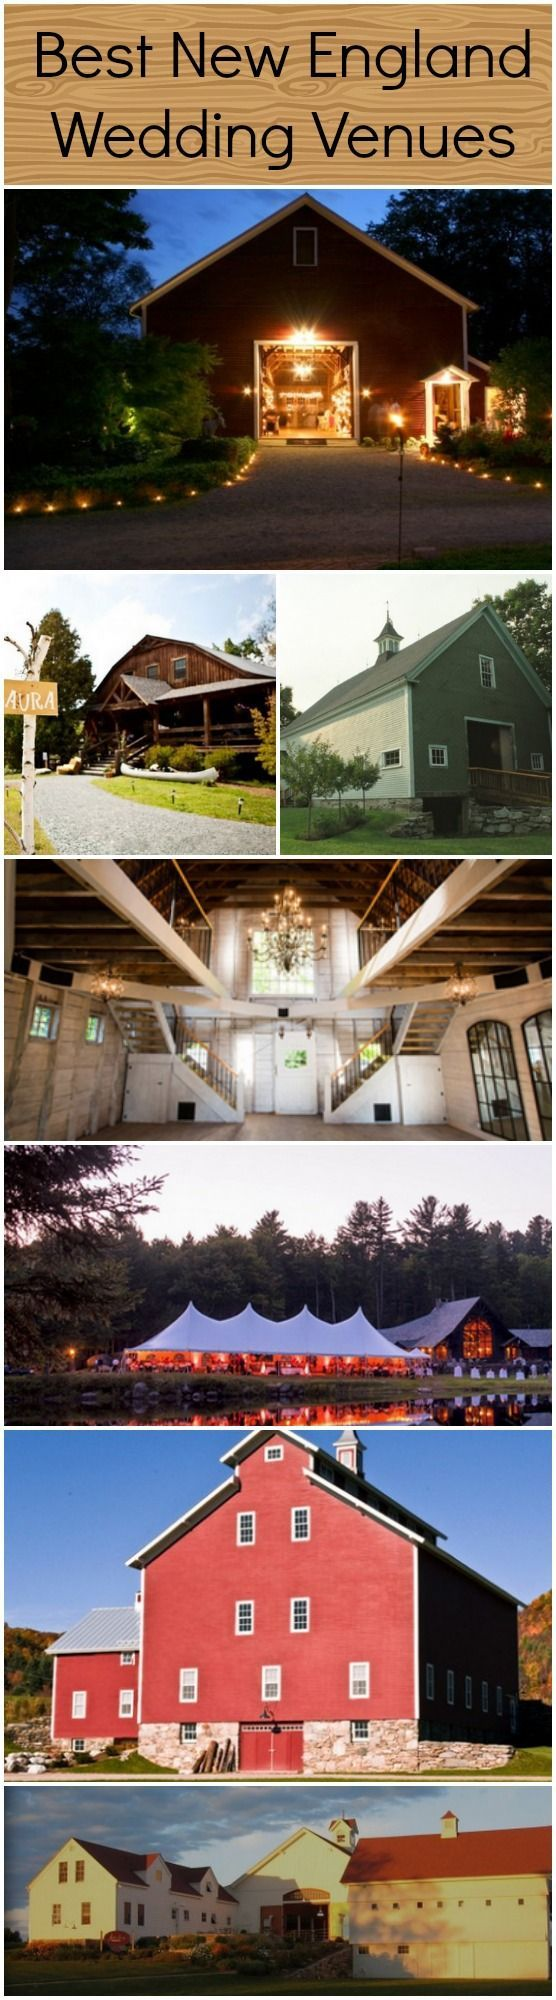 25 best ideas about boston wedding venues on pinterest for Top wedding venues in new england